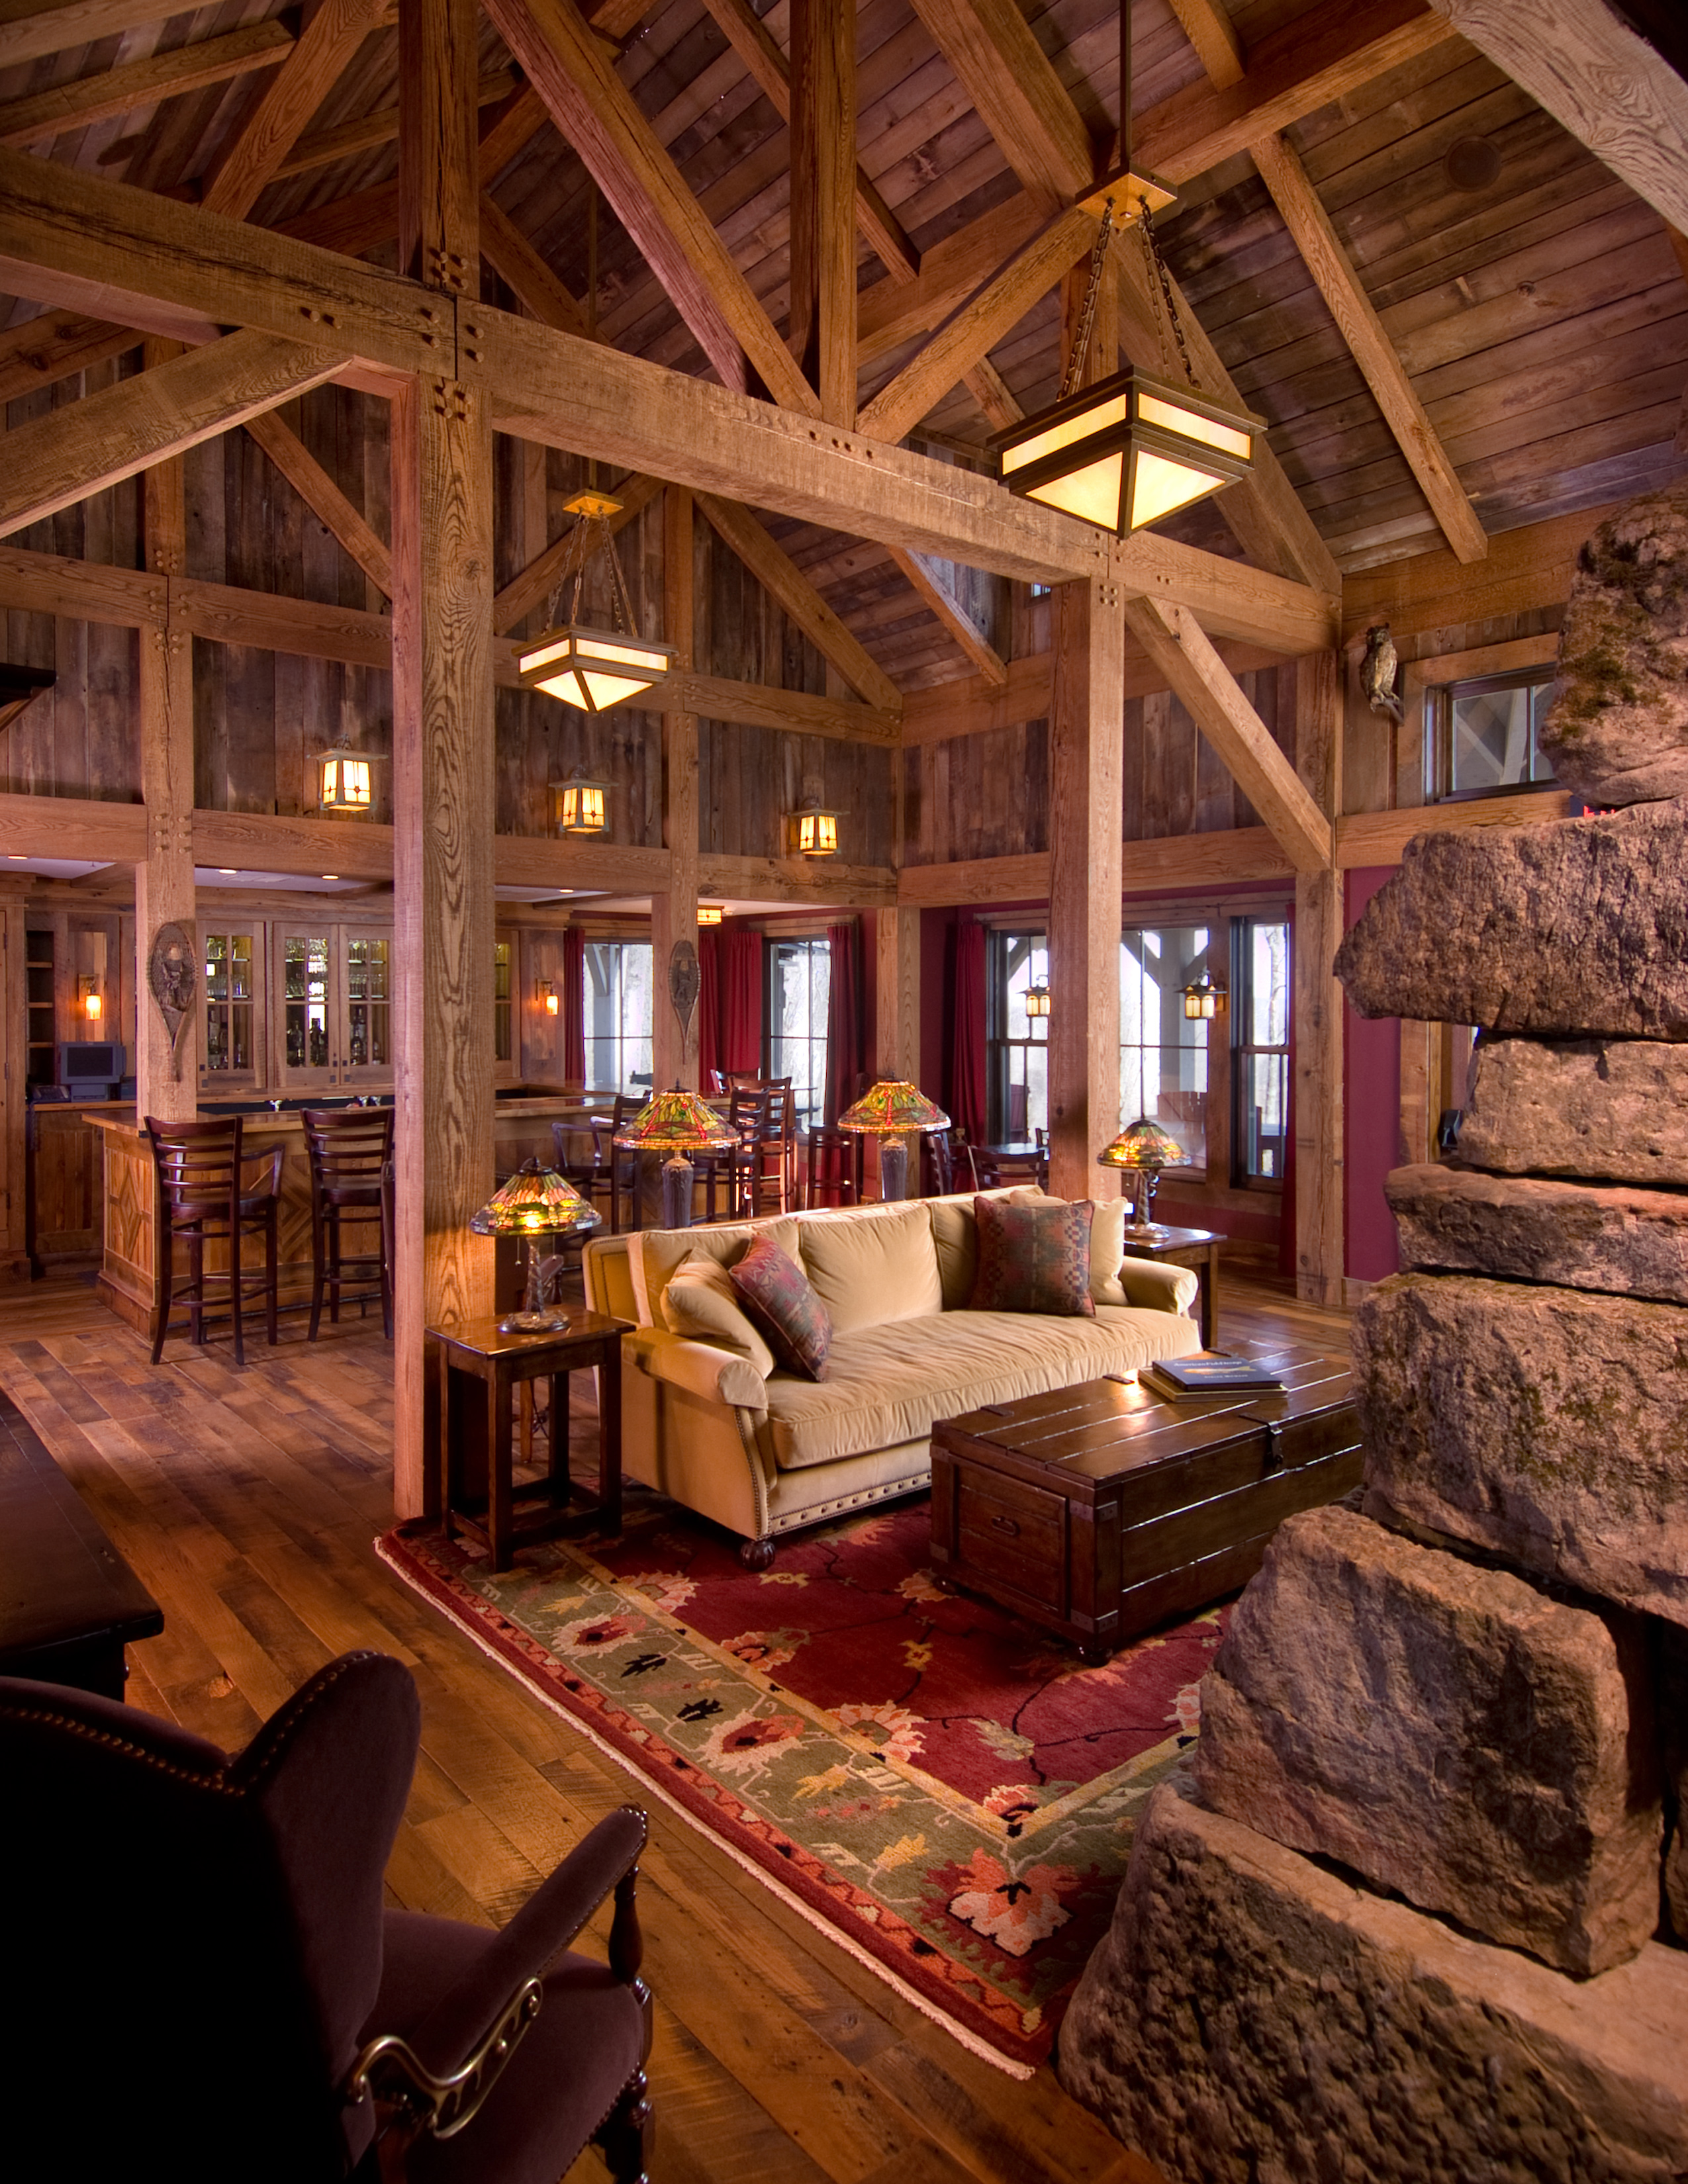 Greenbrier mountain lodge by boris reyt at for Alpine lodge